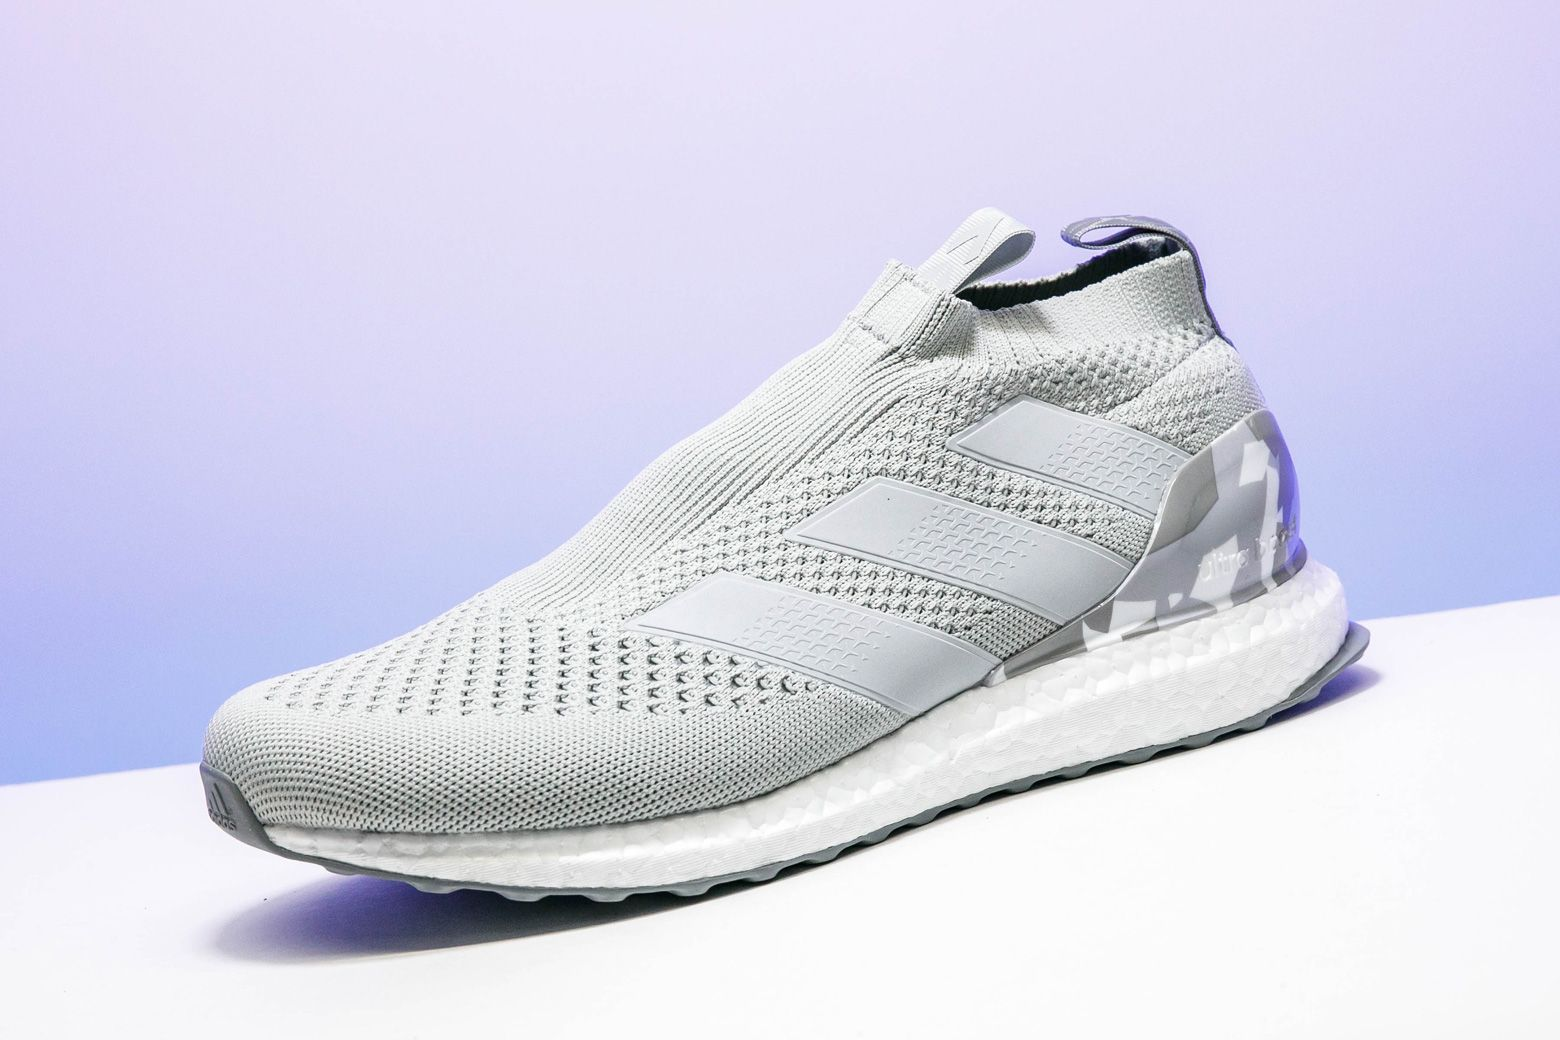 Adidas Ace 17 Purecontrol Ultraboost Snow Camo By9089 In 2020 Adidas Sneakers Adidas Sneakers